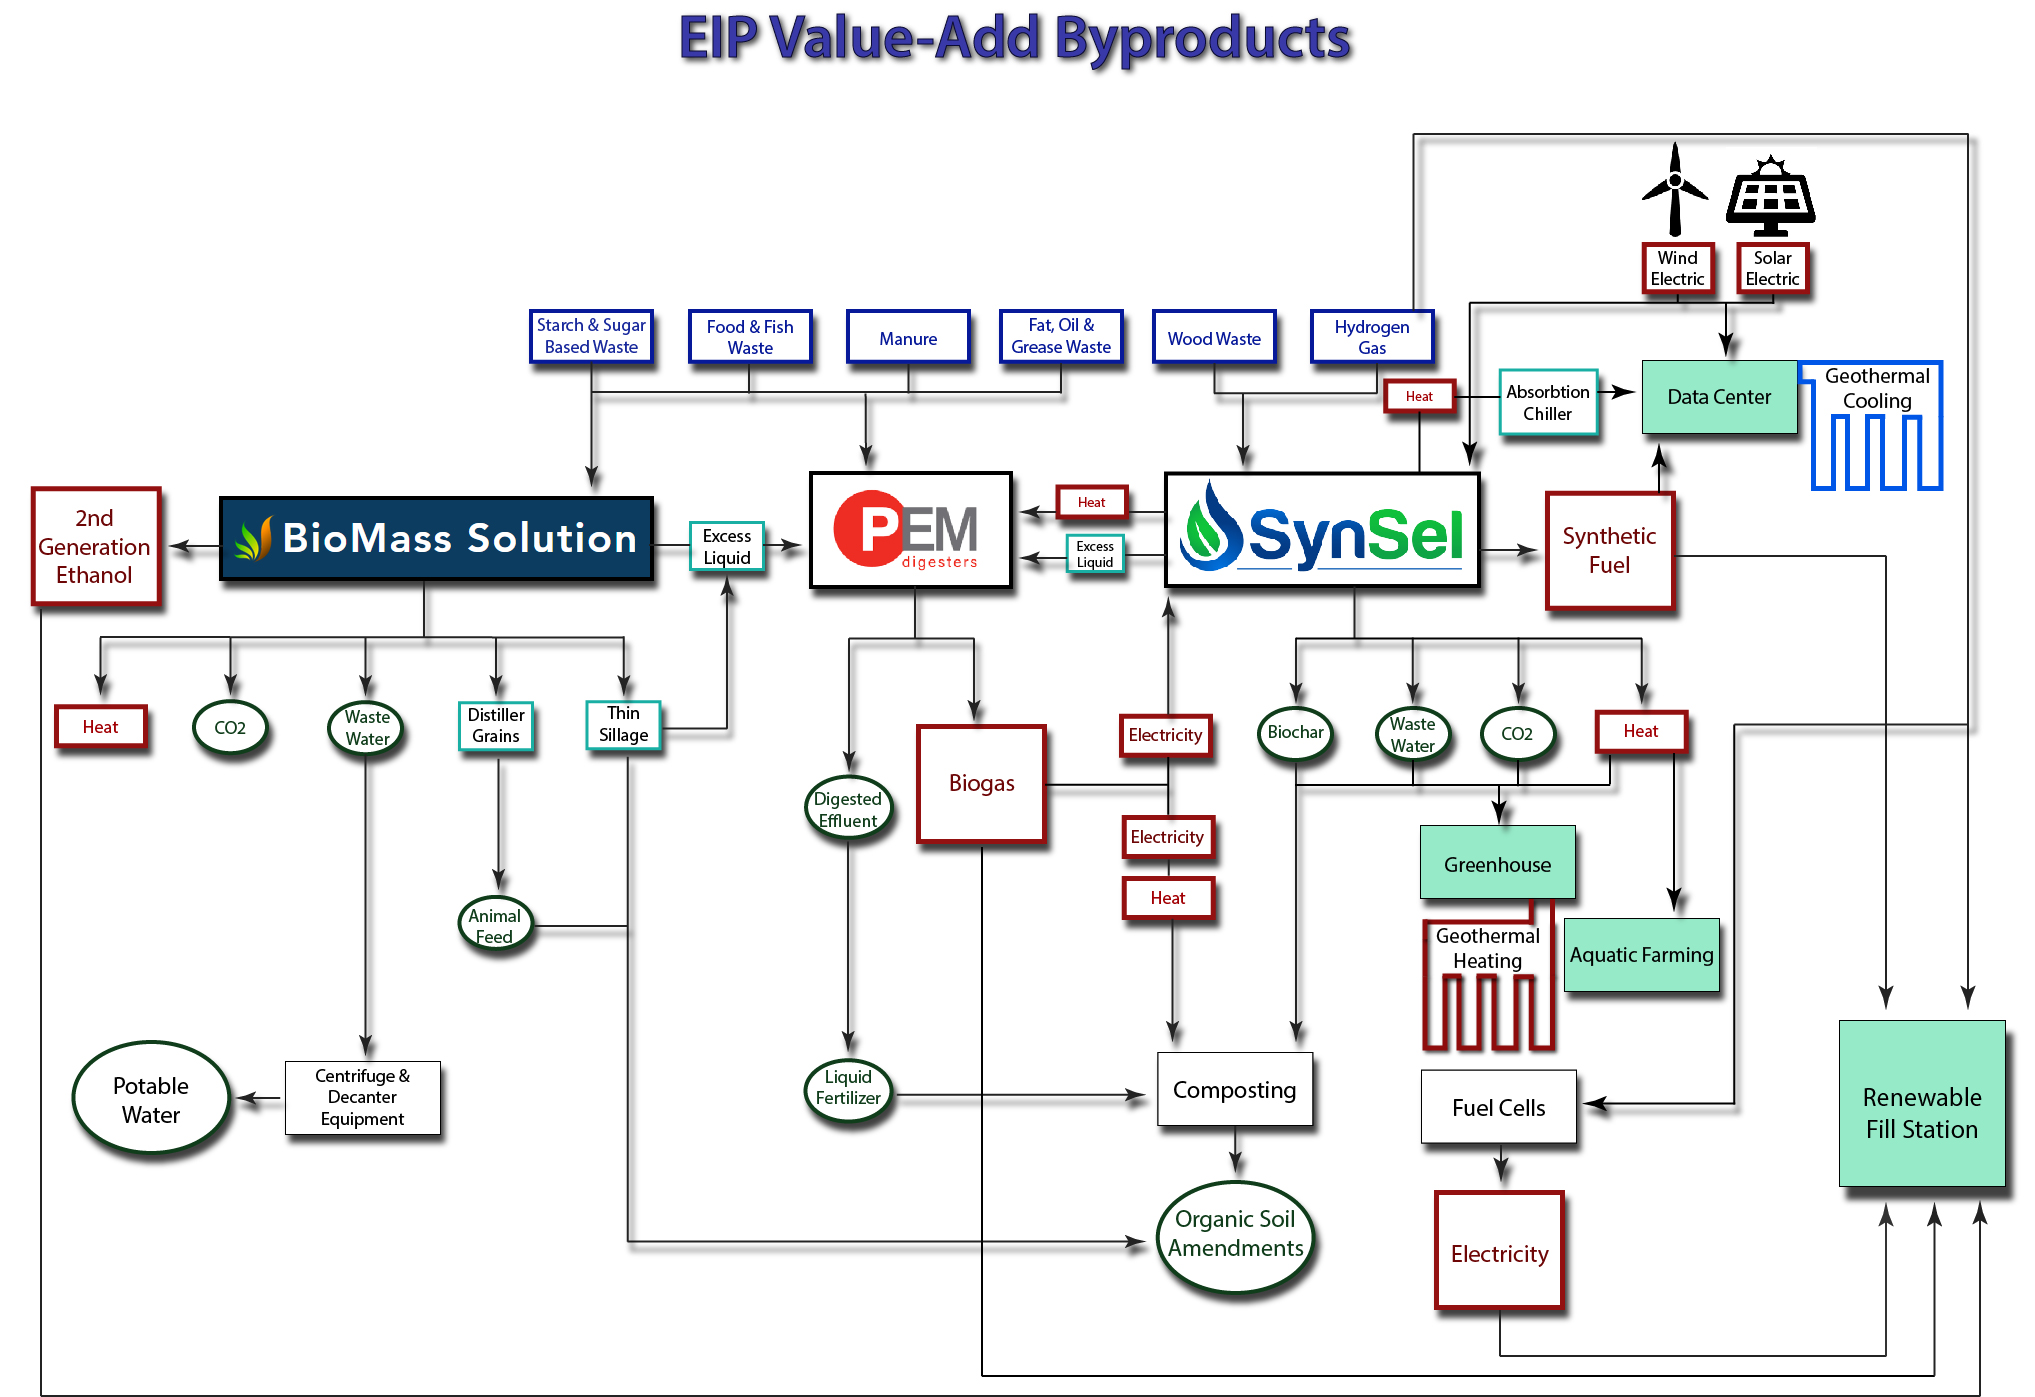 EIP Waste to Energy and Value Add Byproducts Schematic.jpg